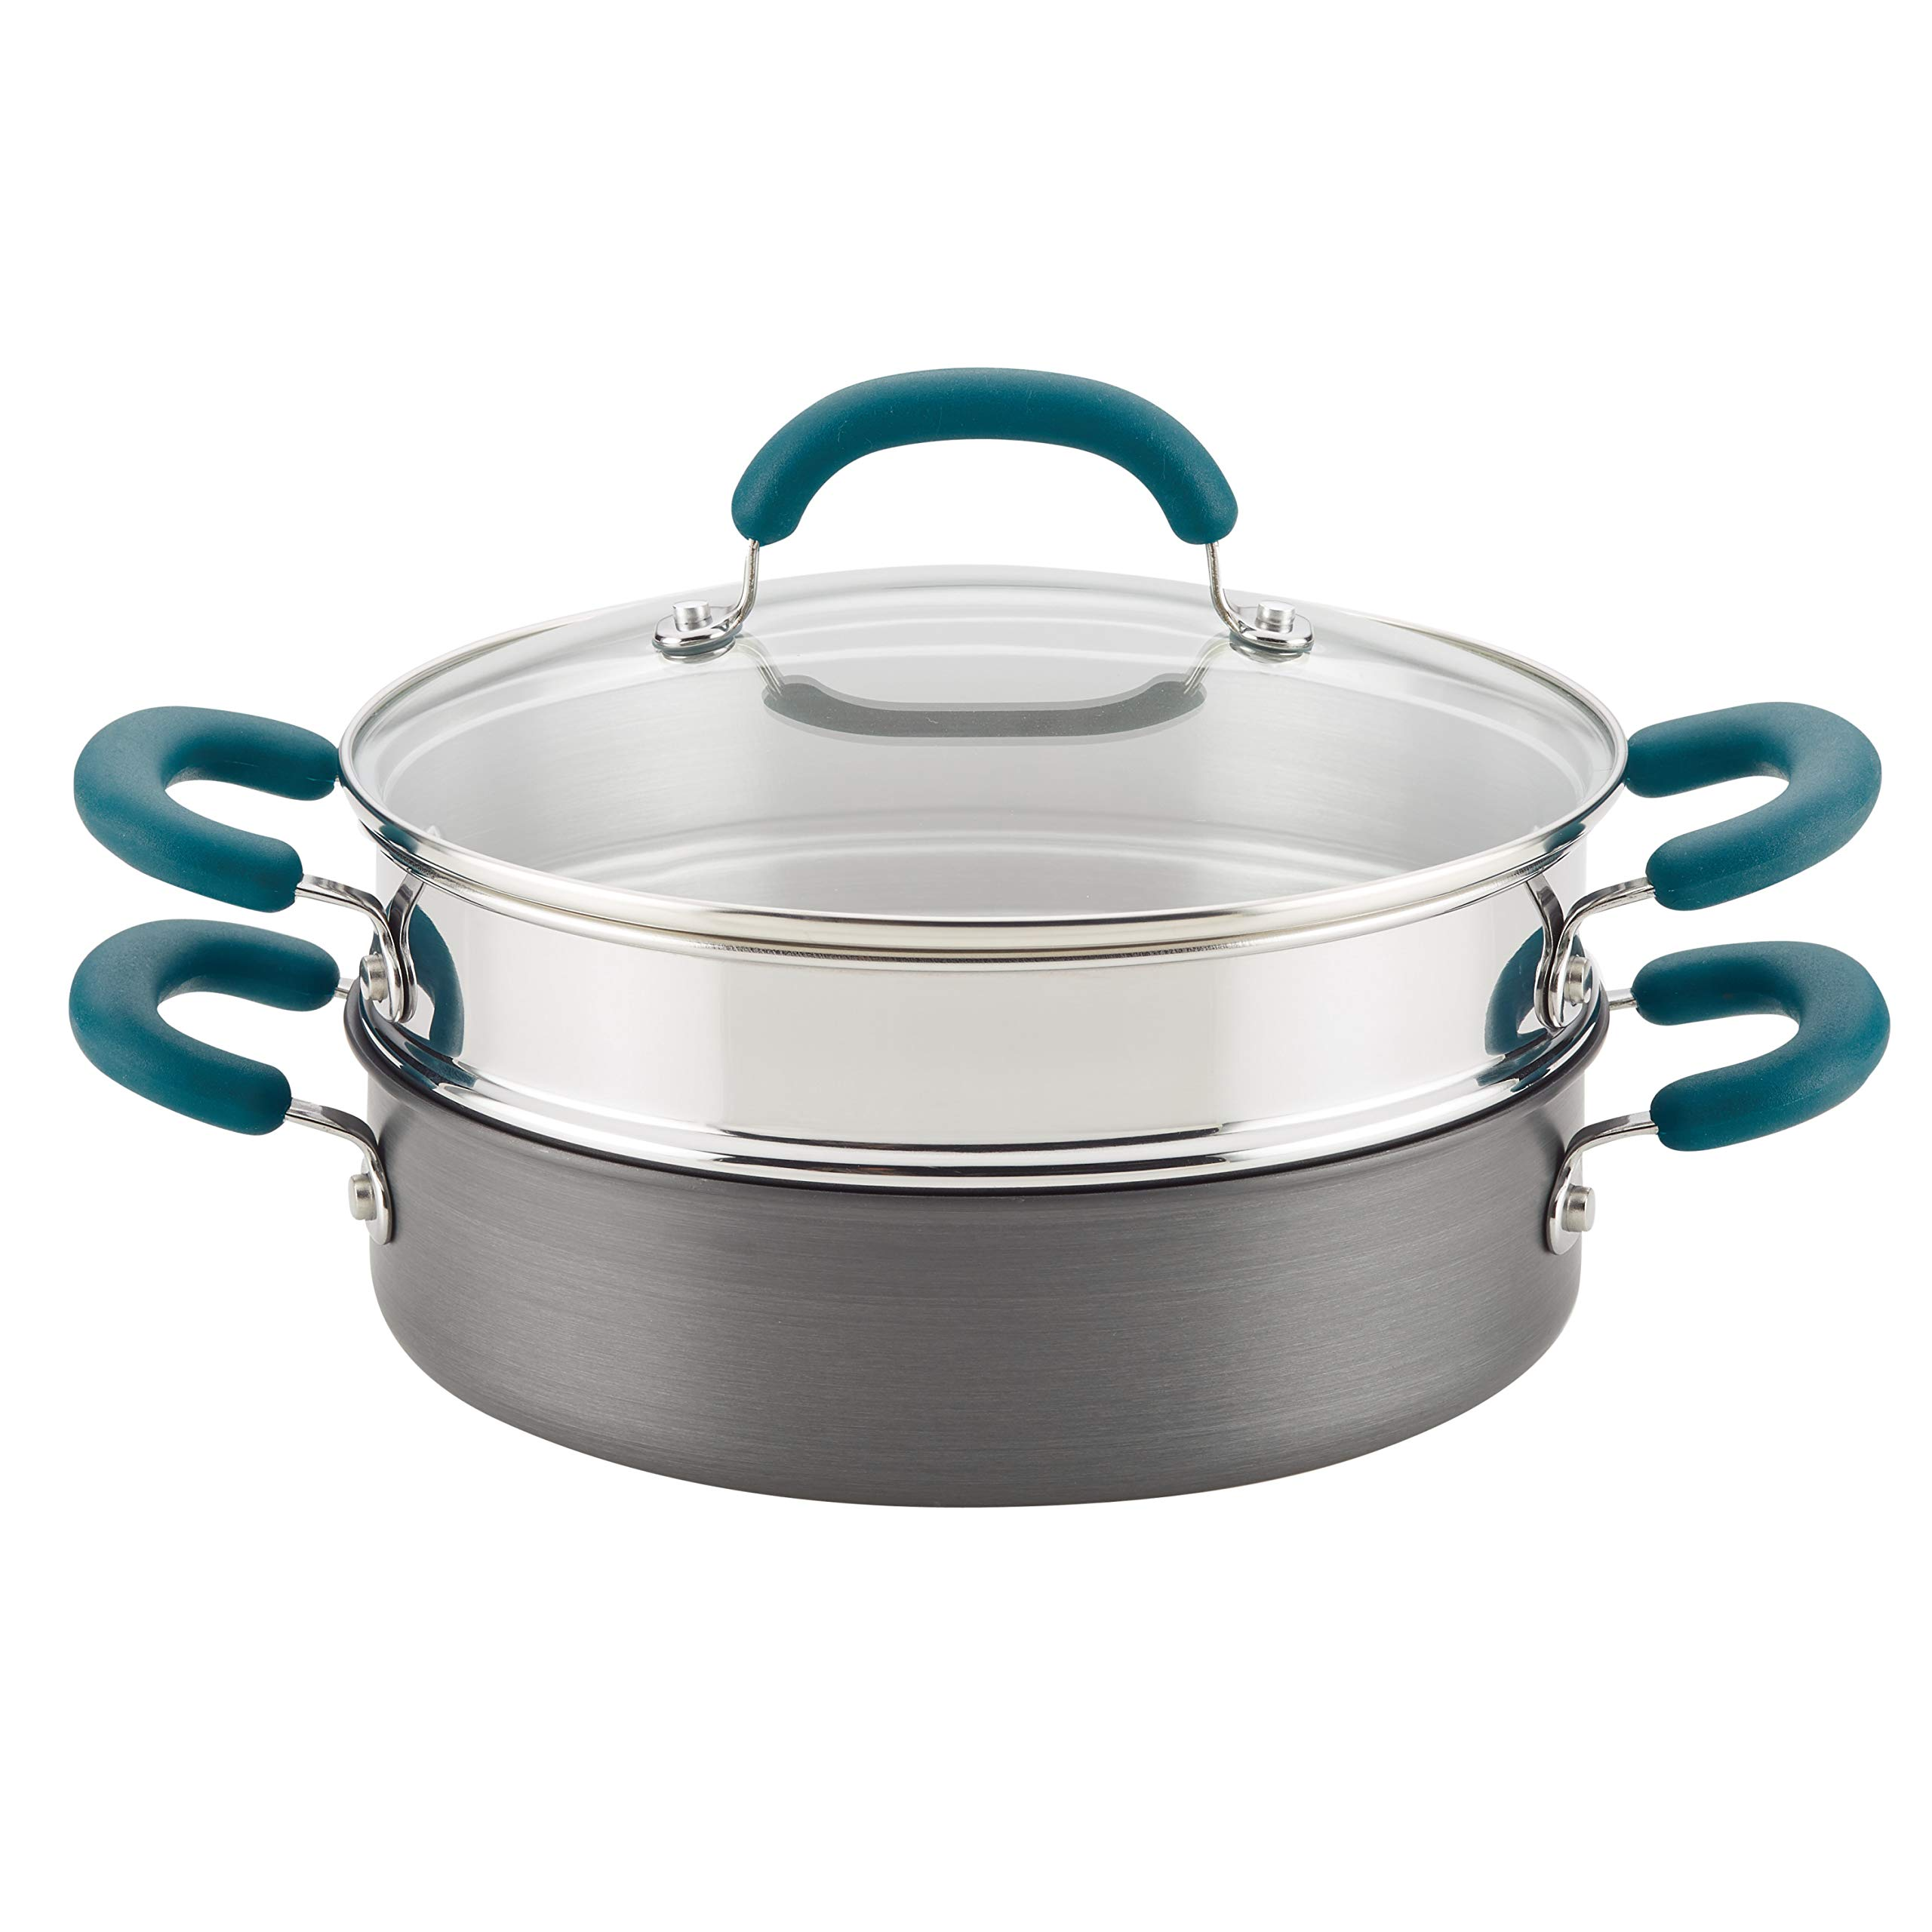 Rachael Ray 81151 3-Piece Hard Anodized Aluminum Steamer Set, Gray With Teal Handles